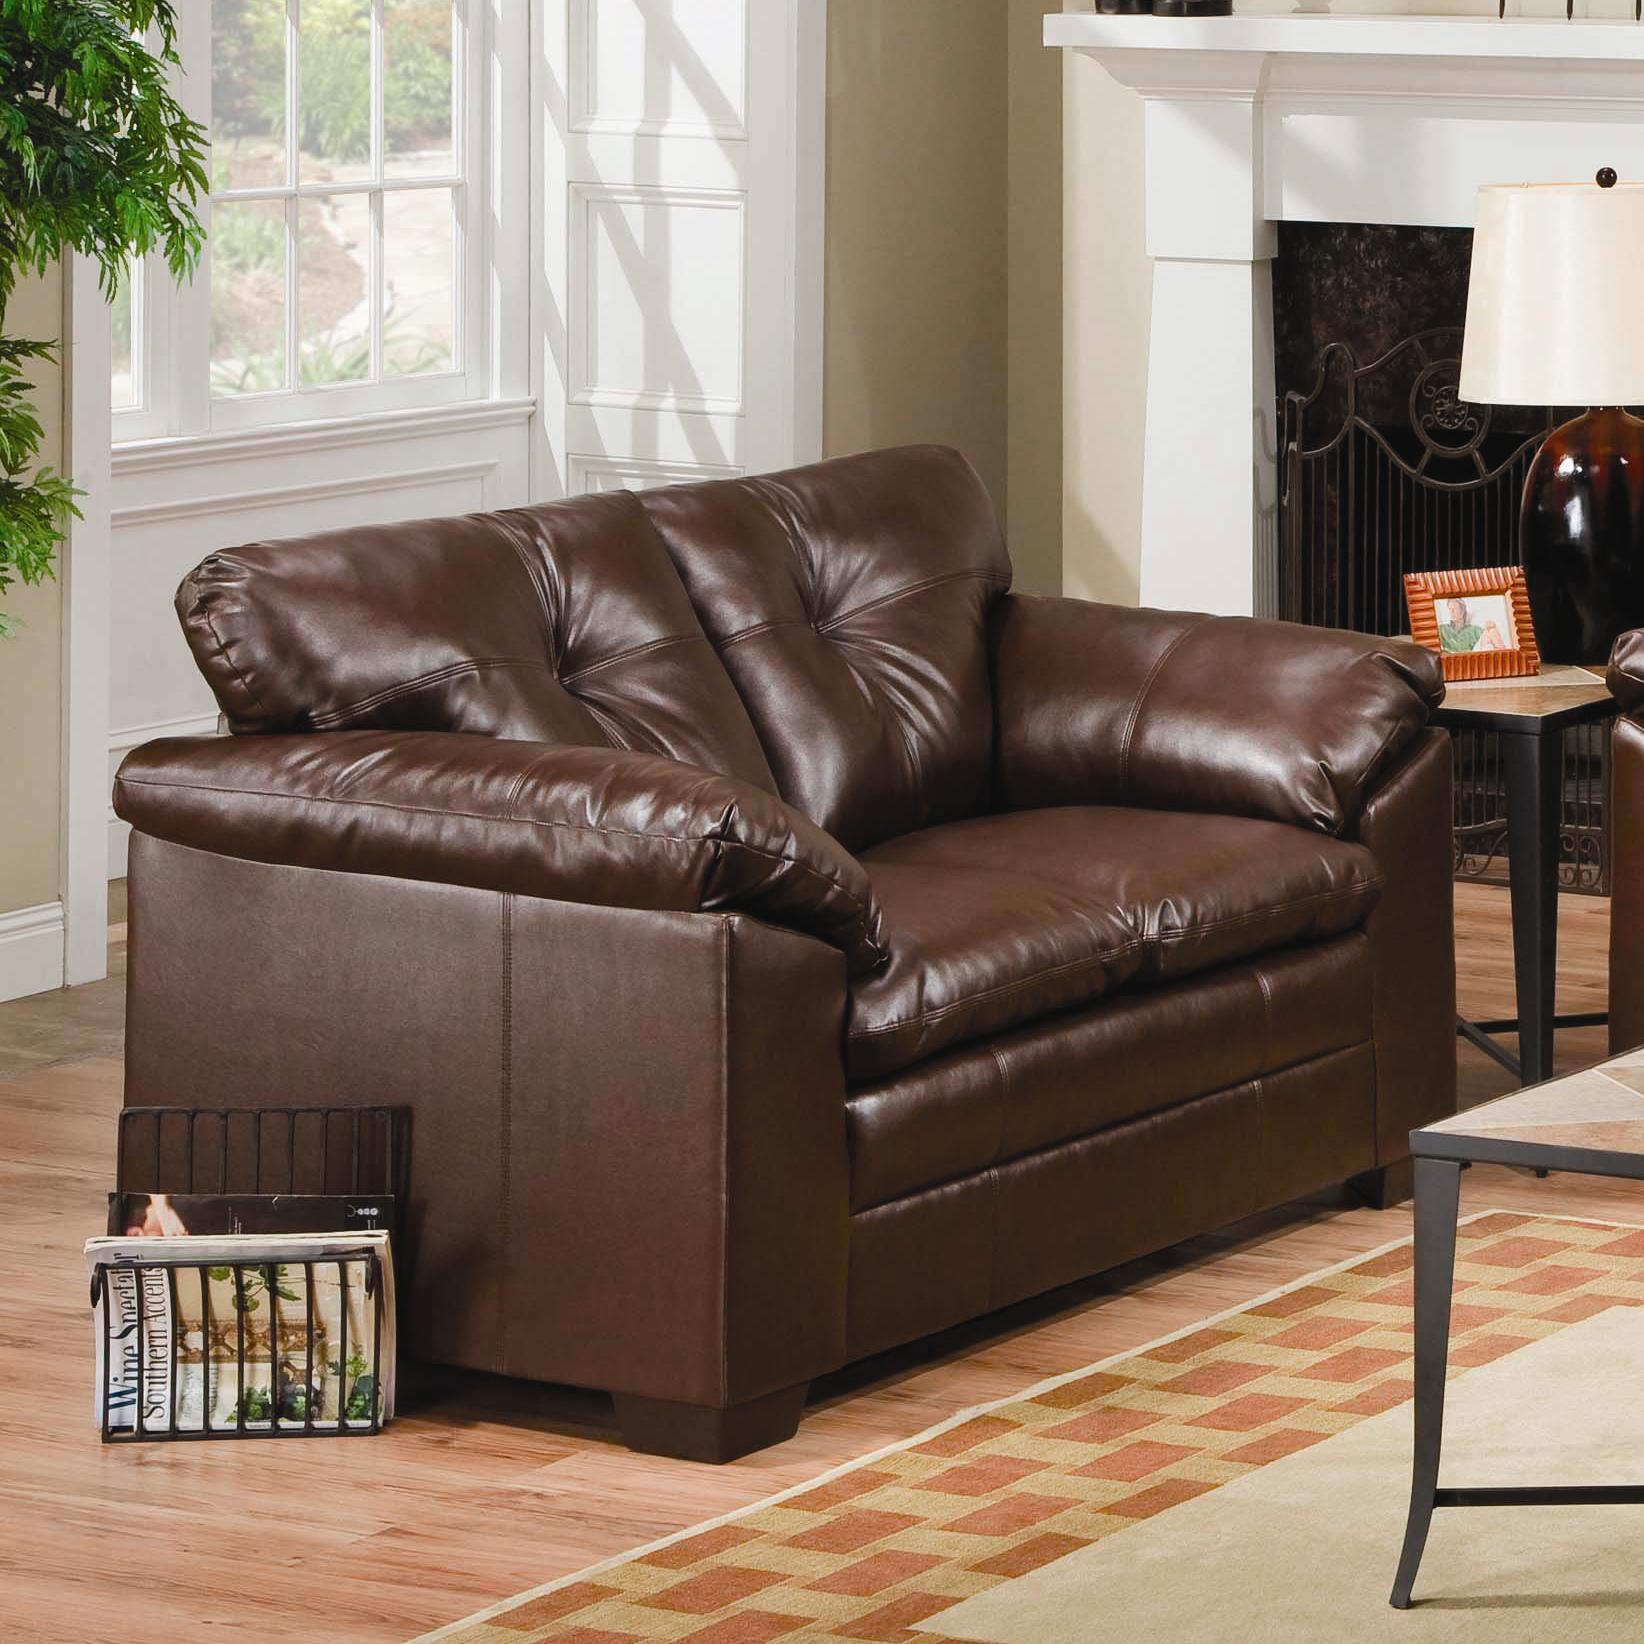 Simmons Upholstery 6569 Loveseat - Item Number: 6569-LS